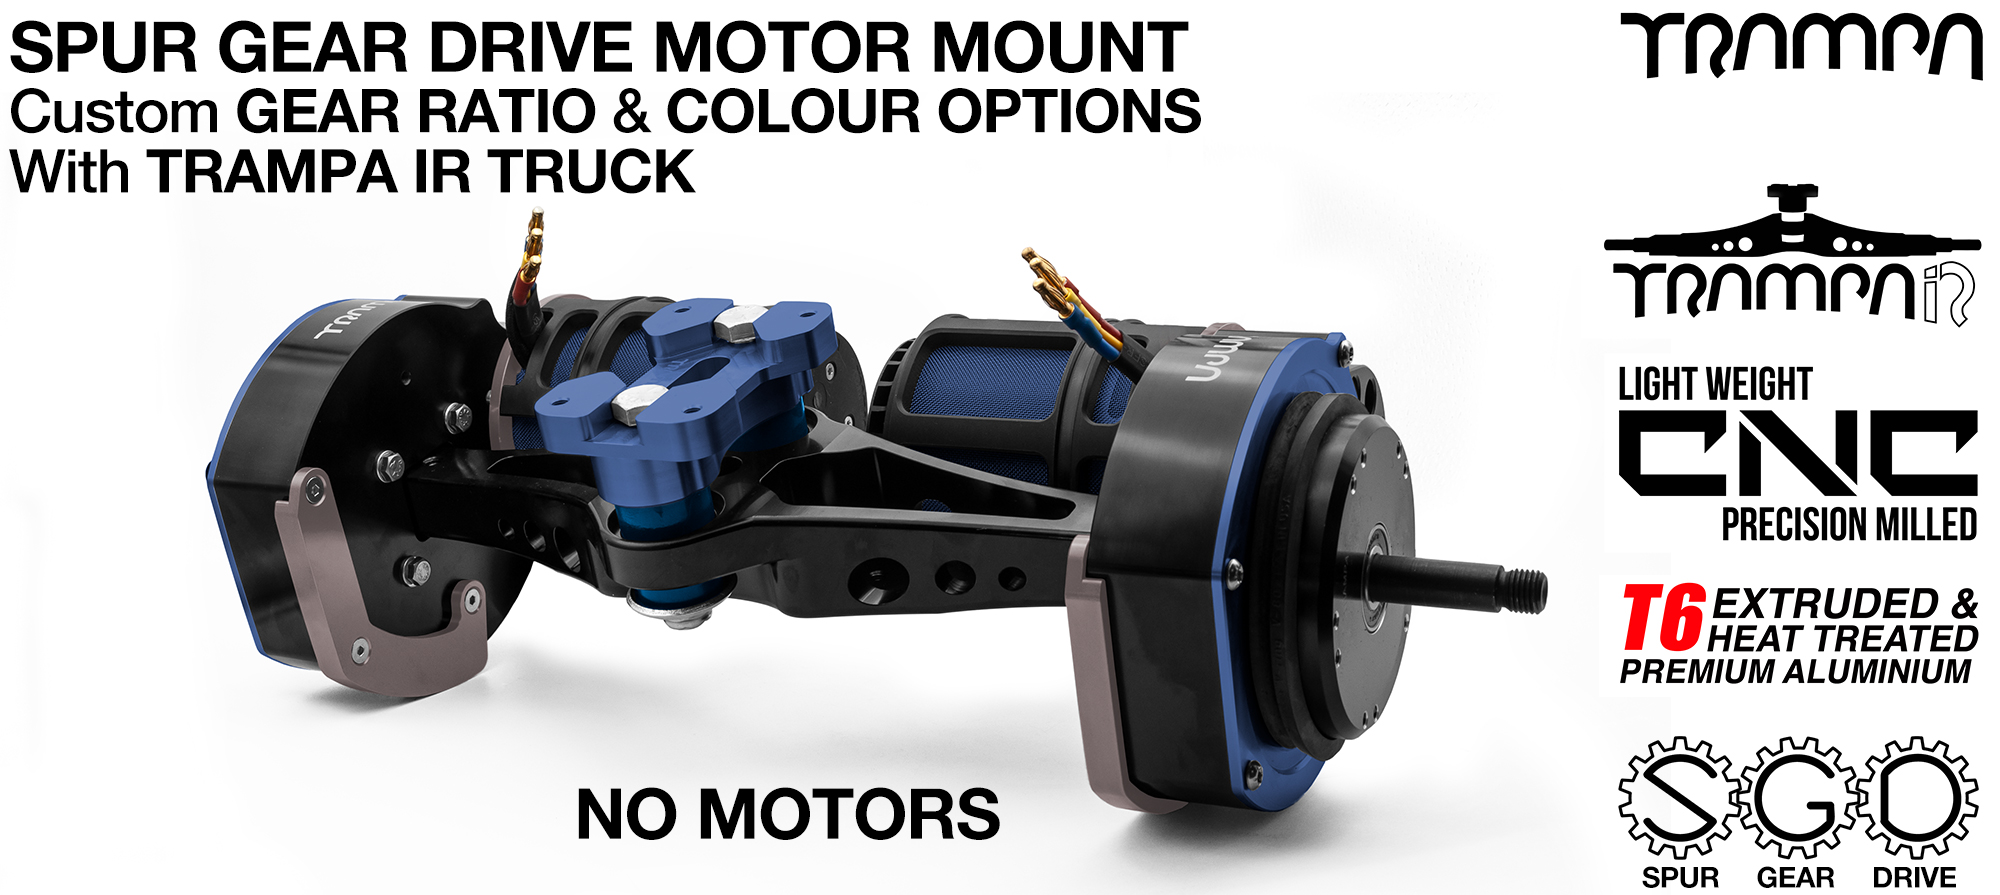 Spur Gear Drive TWIN with PULLEYS & FILTERS Mounted on a TRAMPA-IR TRUCK